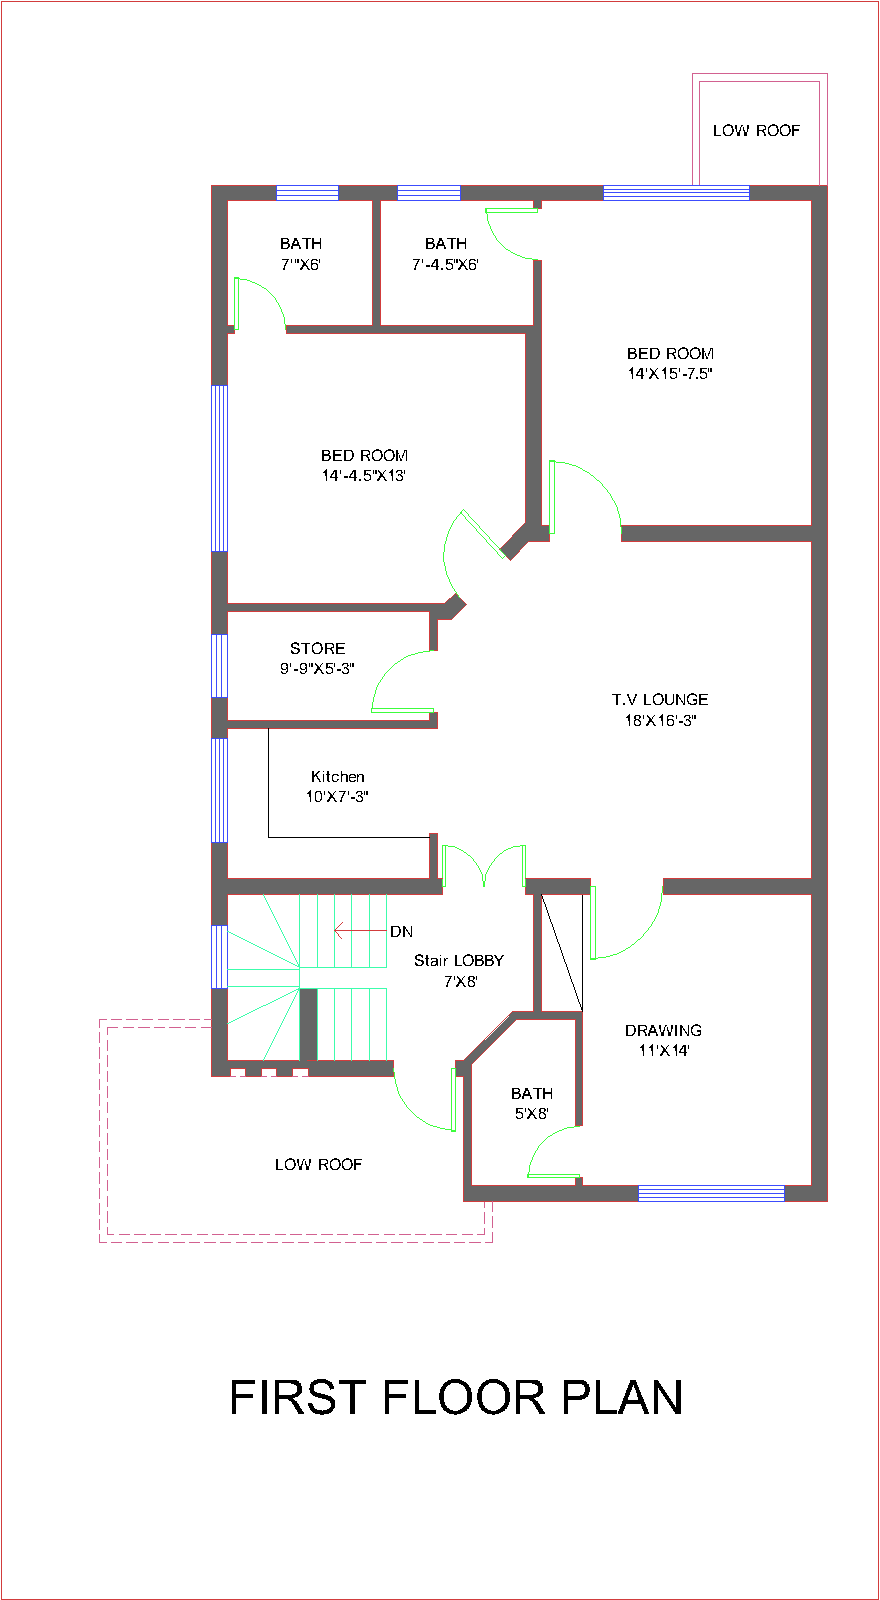 House plans and design architectural design of 10 marla houses House map design online free